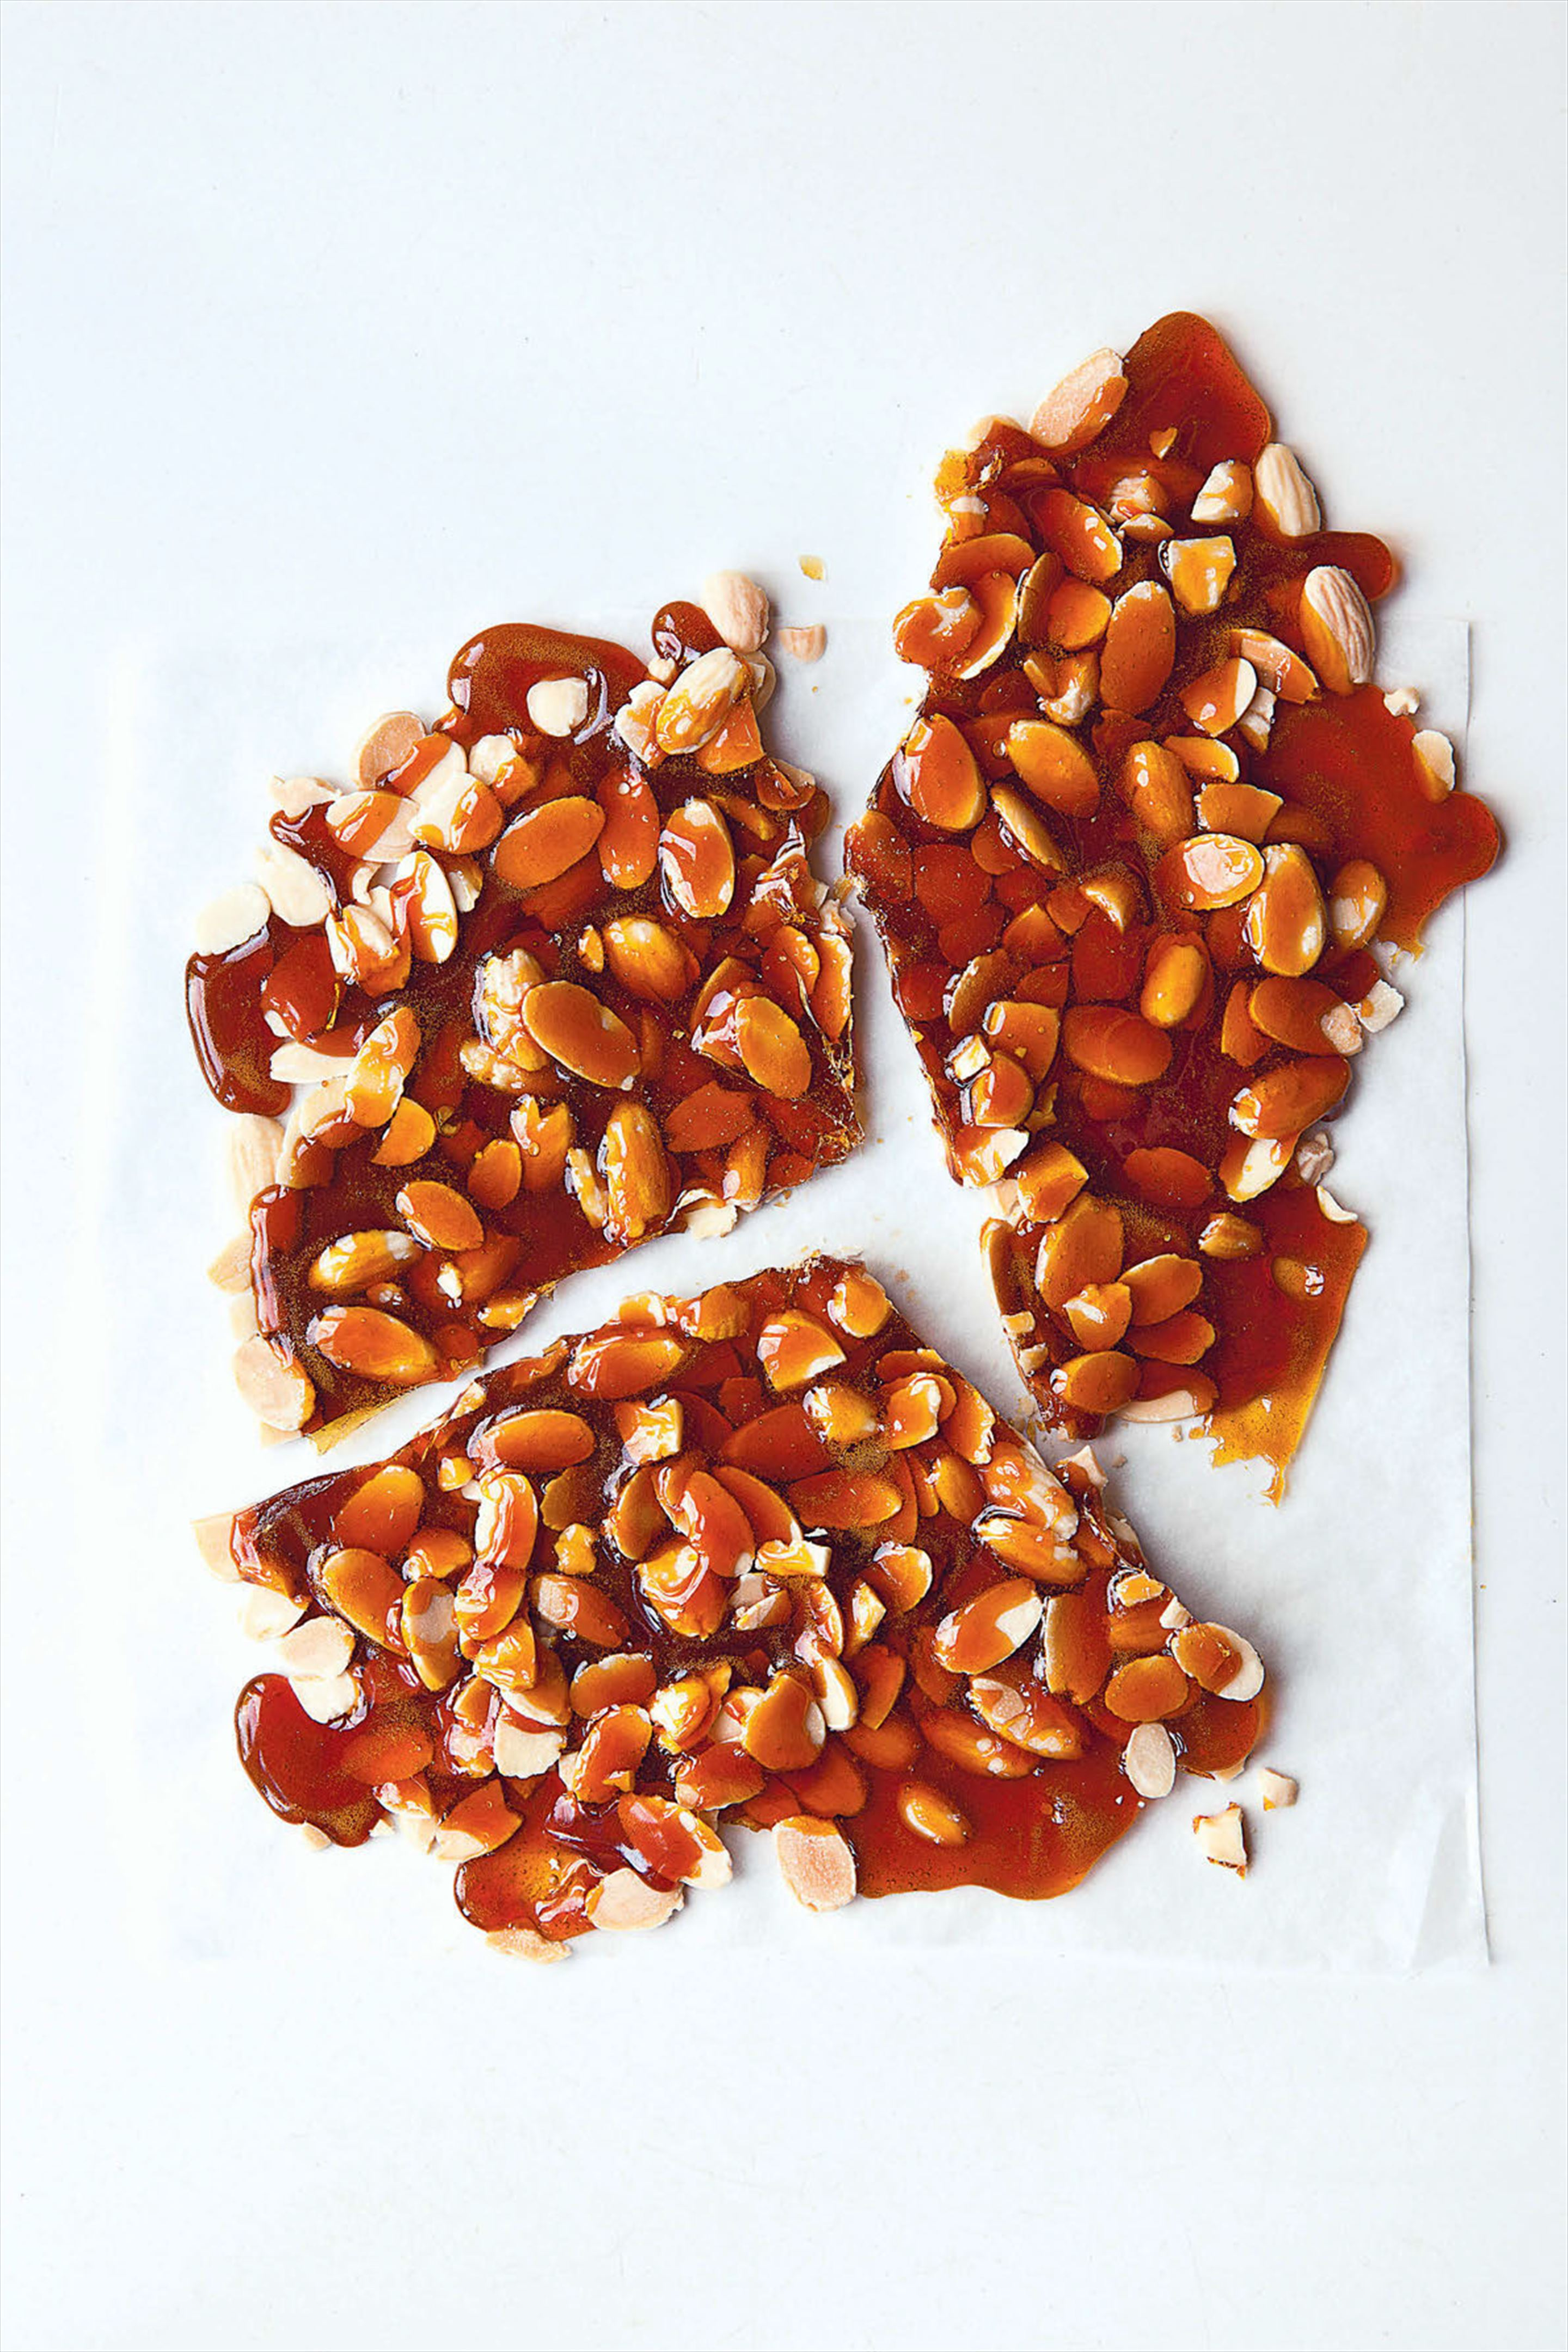 Flaked almond brittle or praline